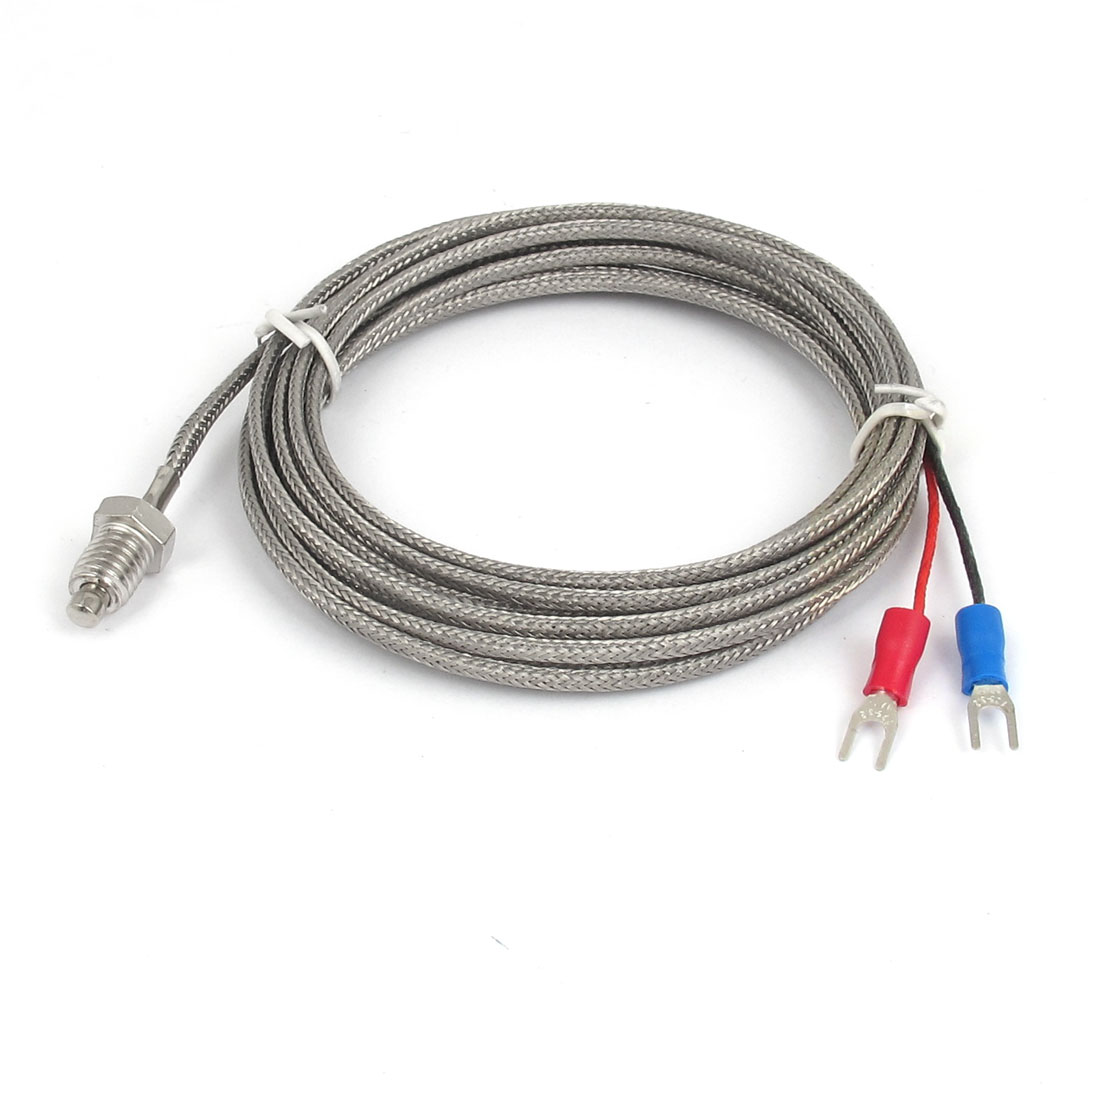 3Meter 10Ft Cable K Type 8mm Thread Metal Braided Shield 0-600C Sensor Thermocouple